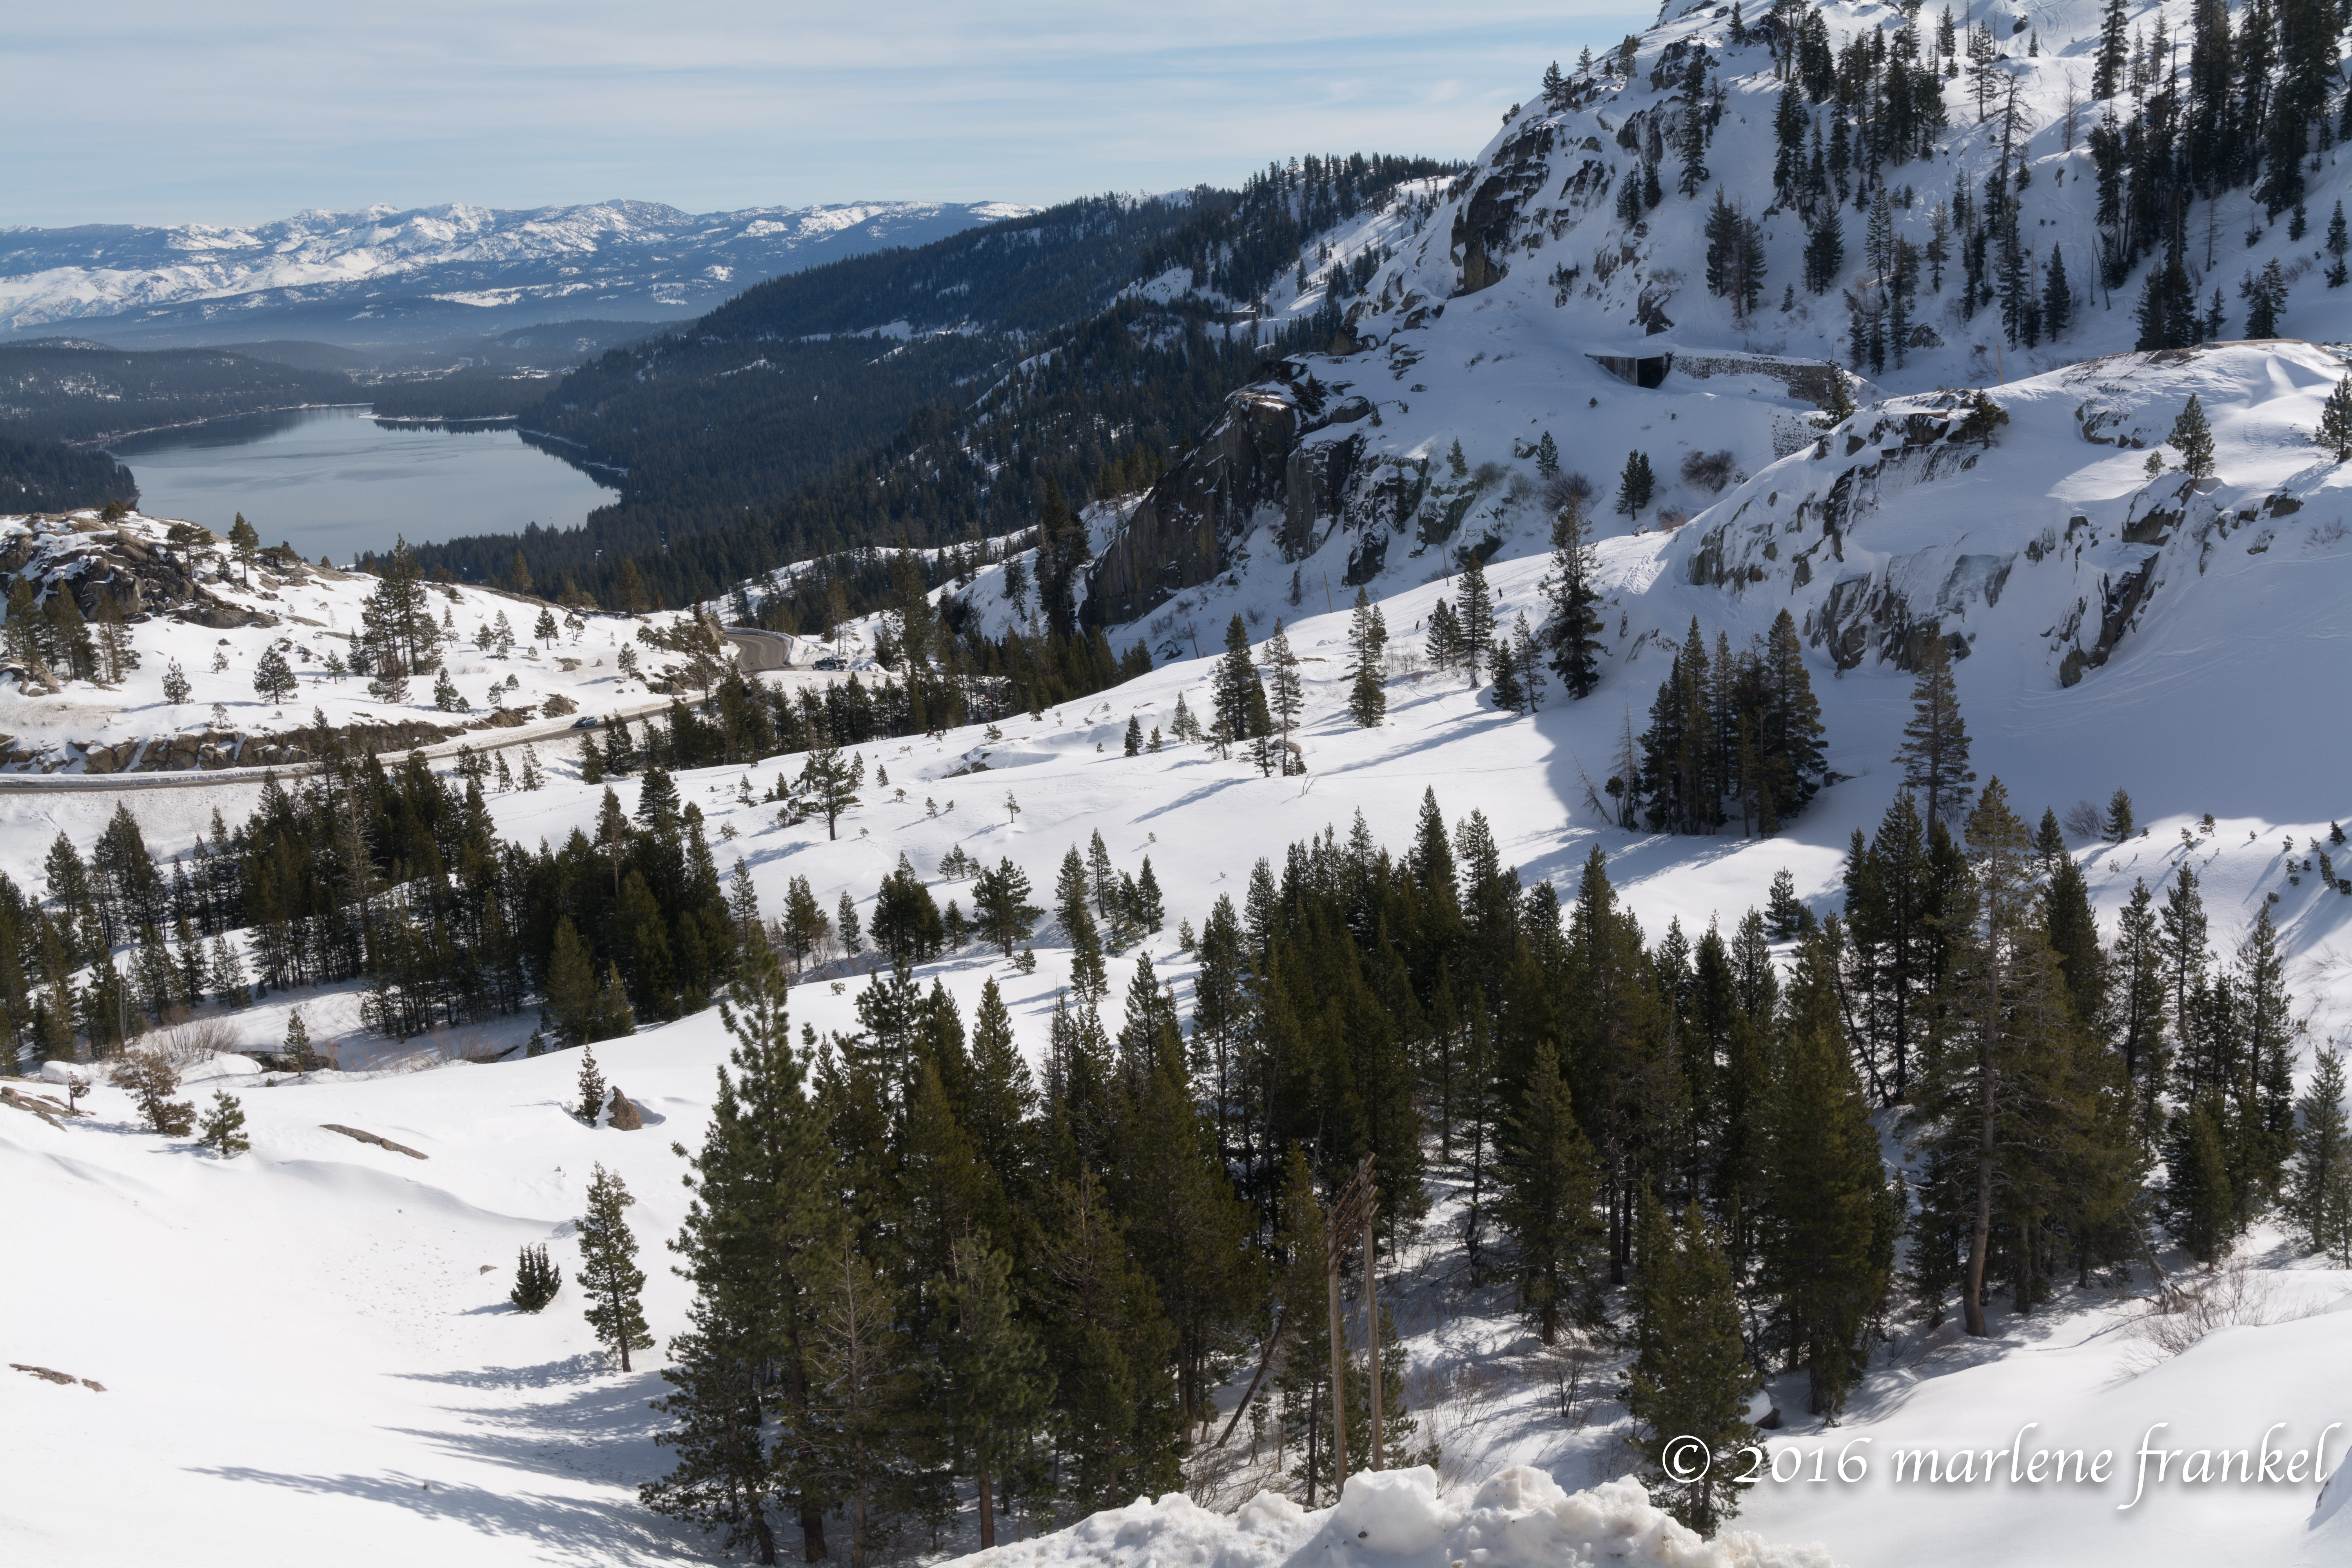 1602_06_DonnerSnow_013